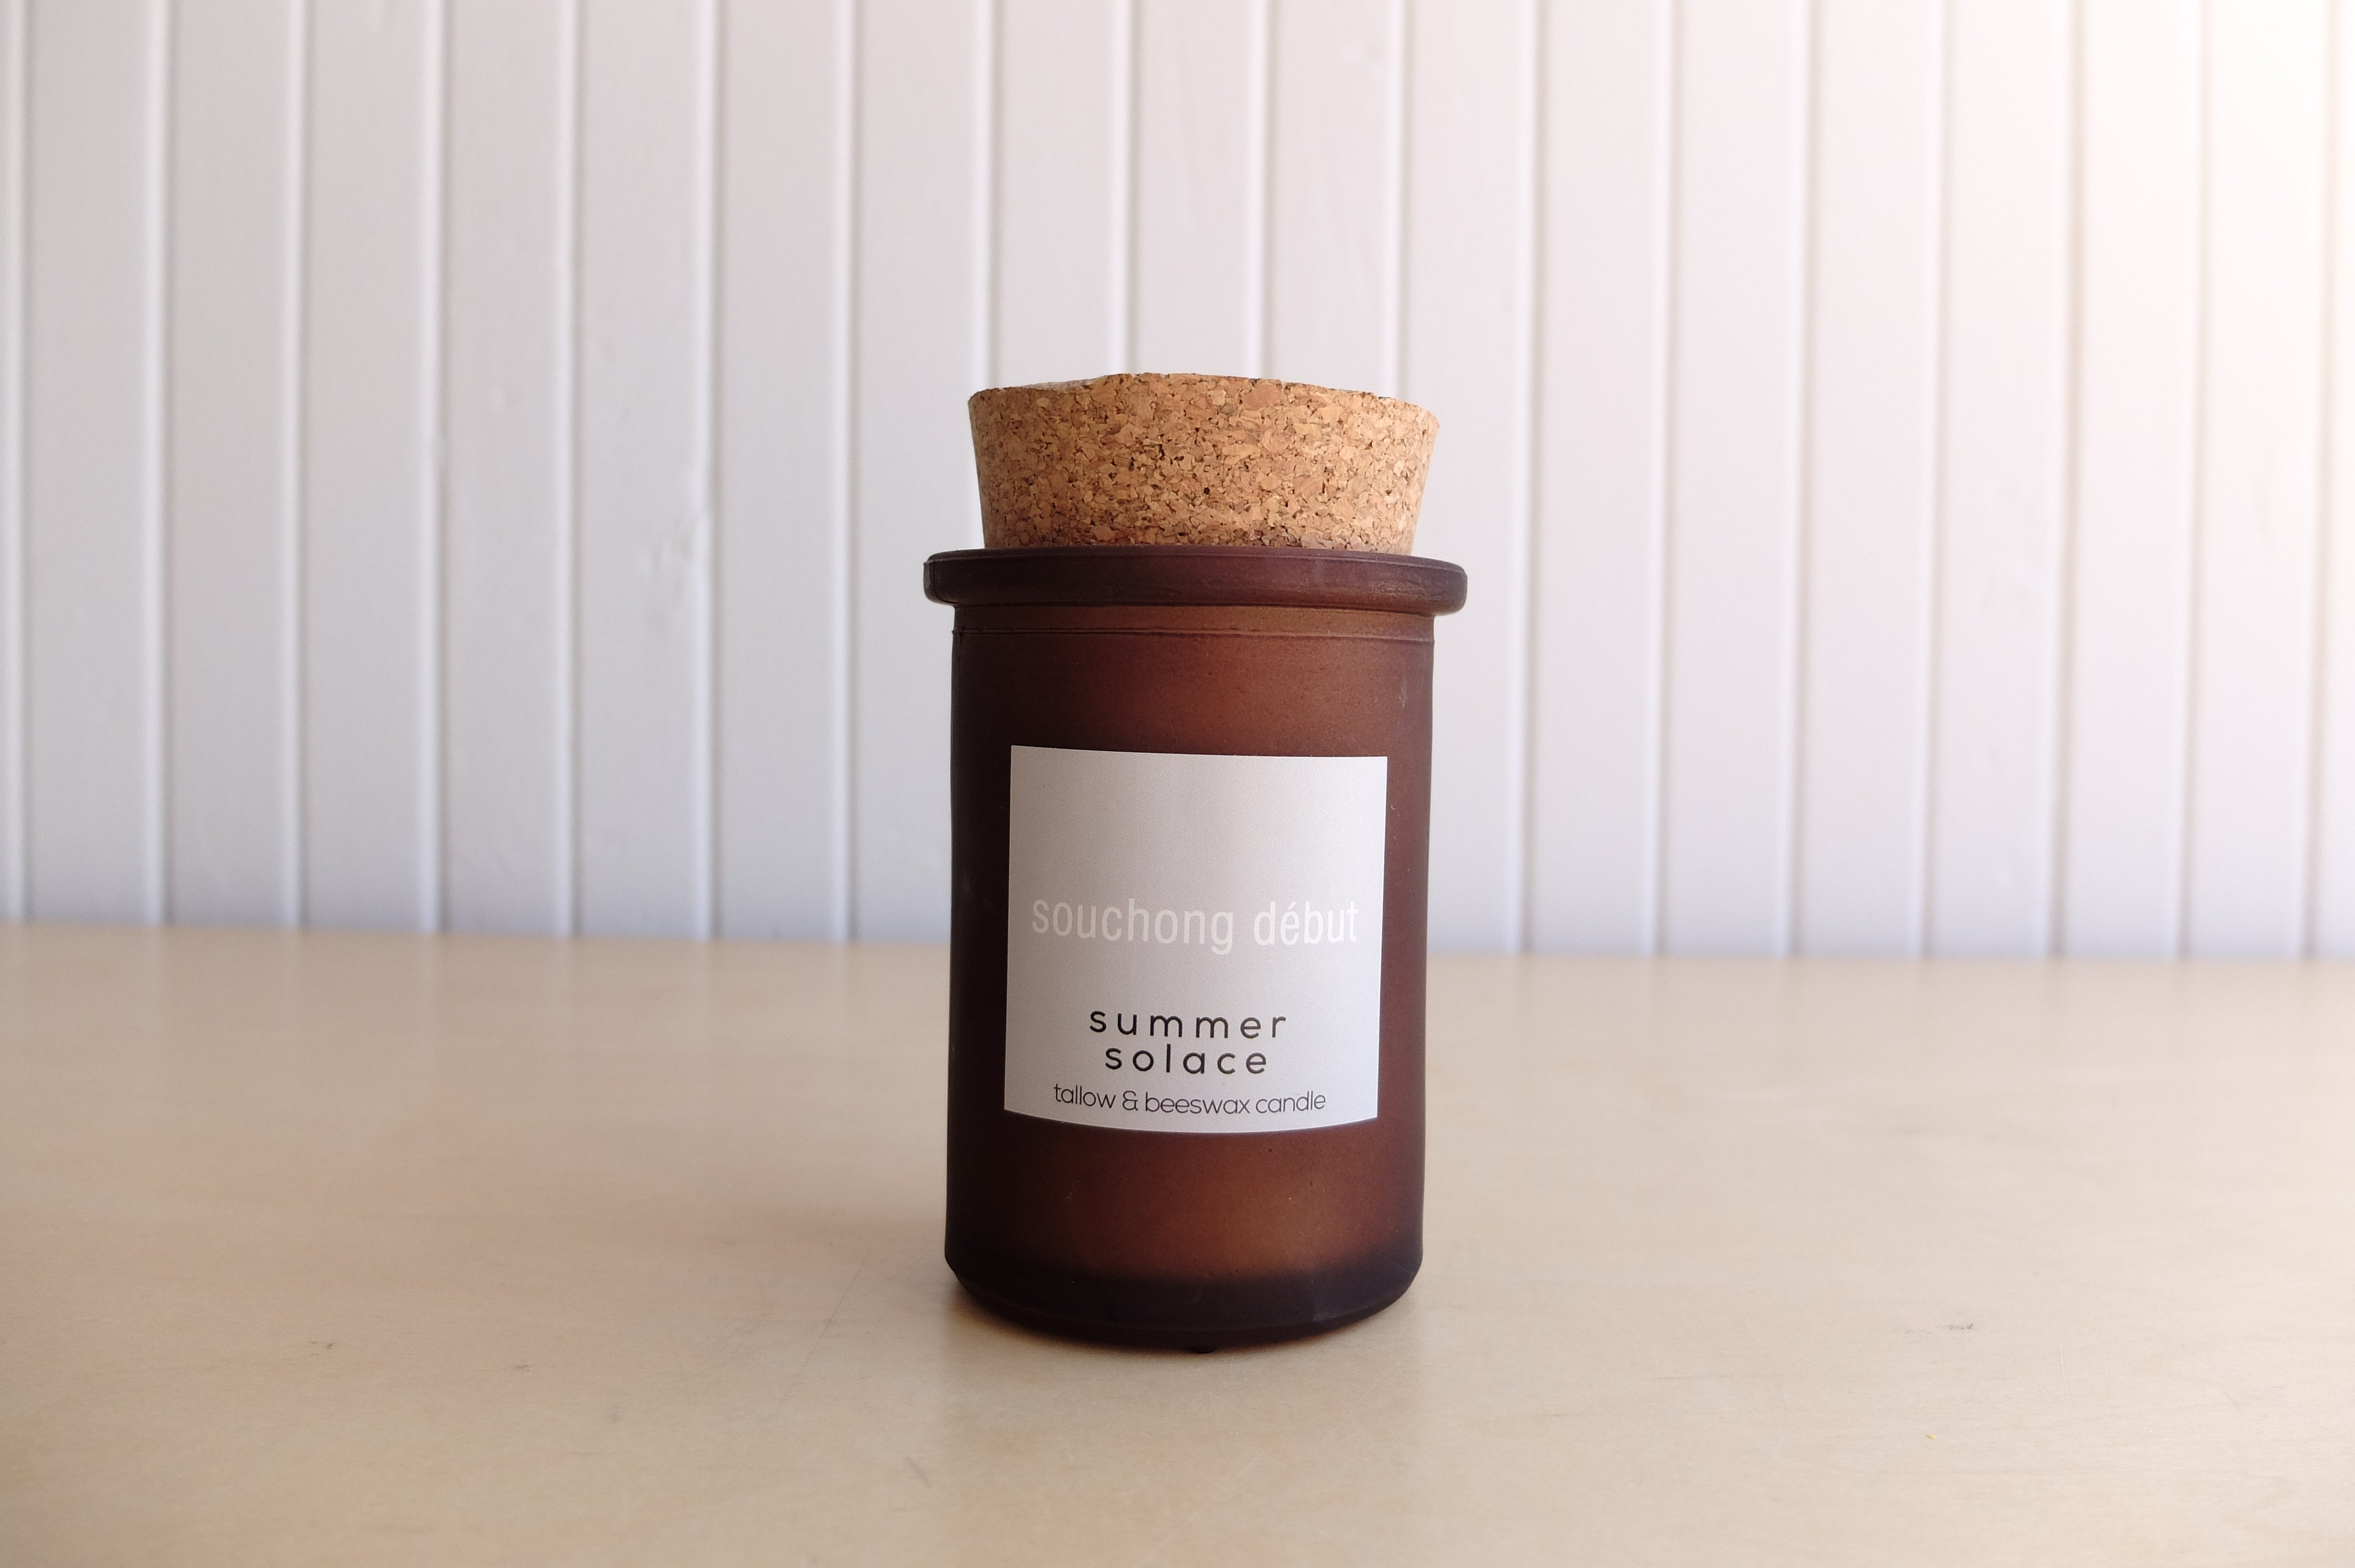 Summer Solace Tallow Candle, Souchang Debut